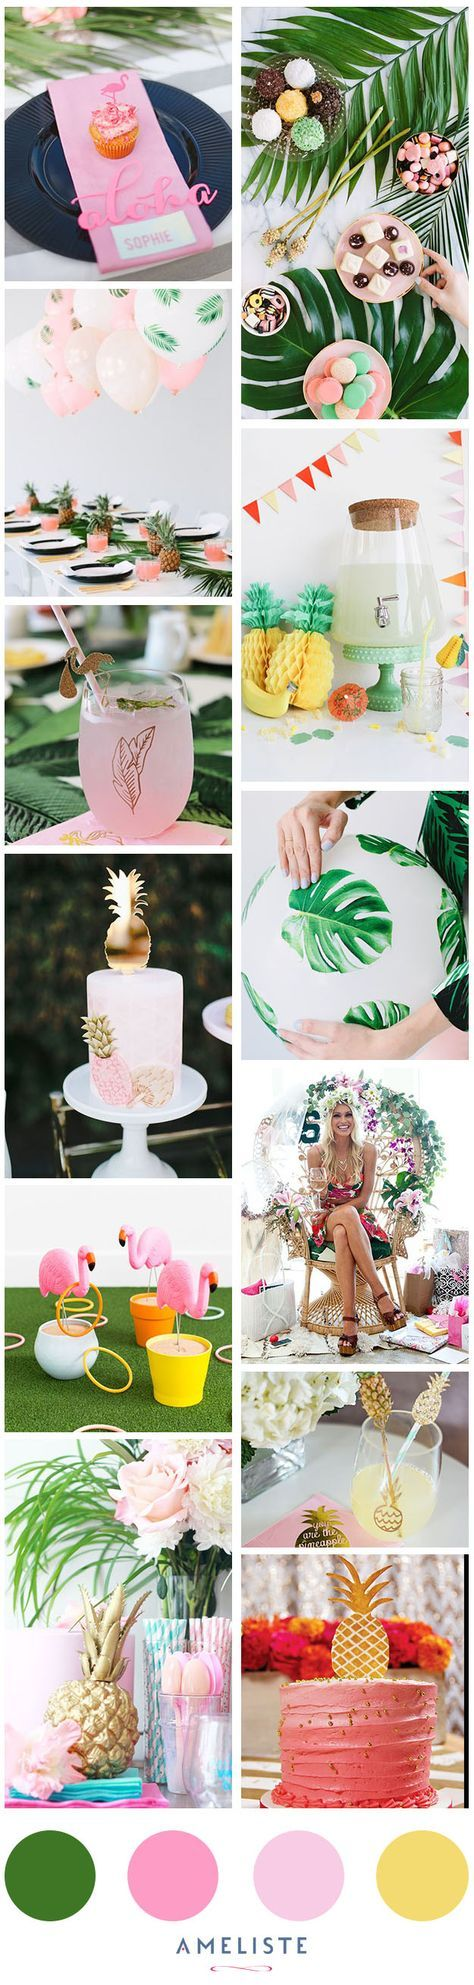 Tropical preppy party